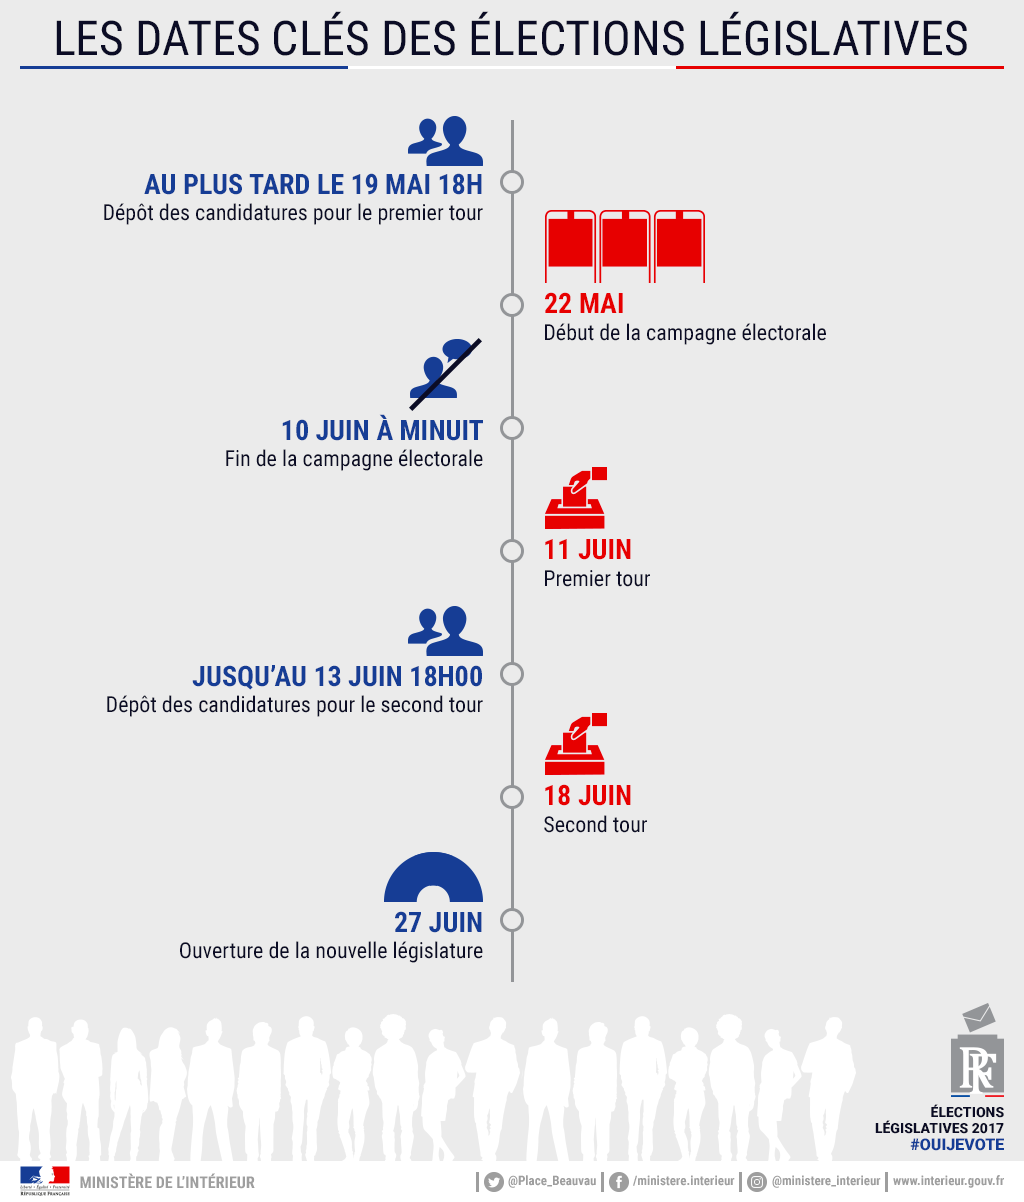 Les dates cl s lections l gislatives 2017 lections citoyennet nos infographies - Dates elections presidentielles france ...